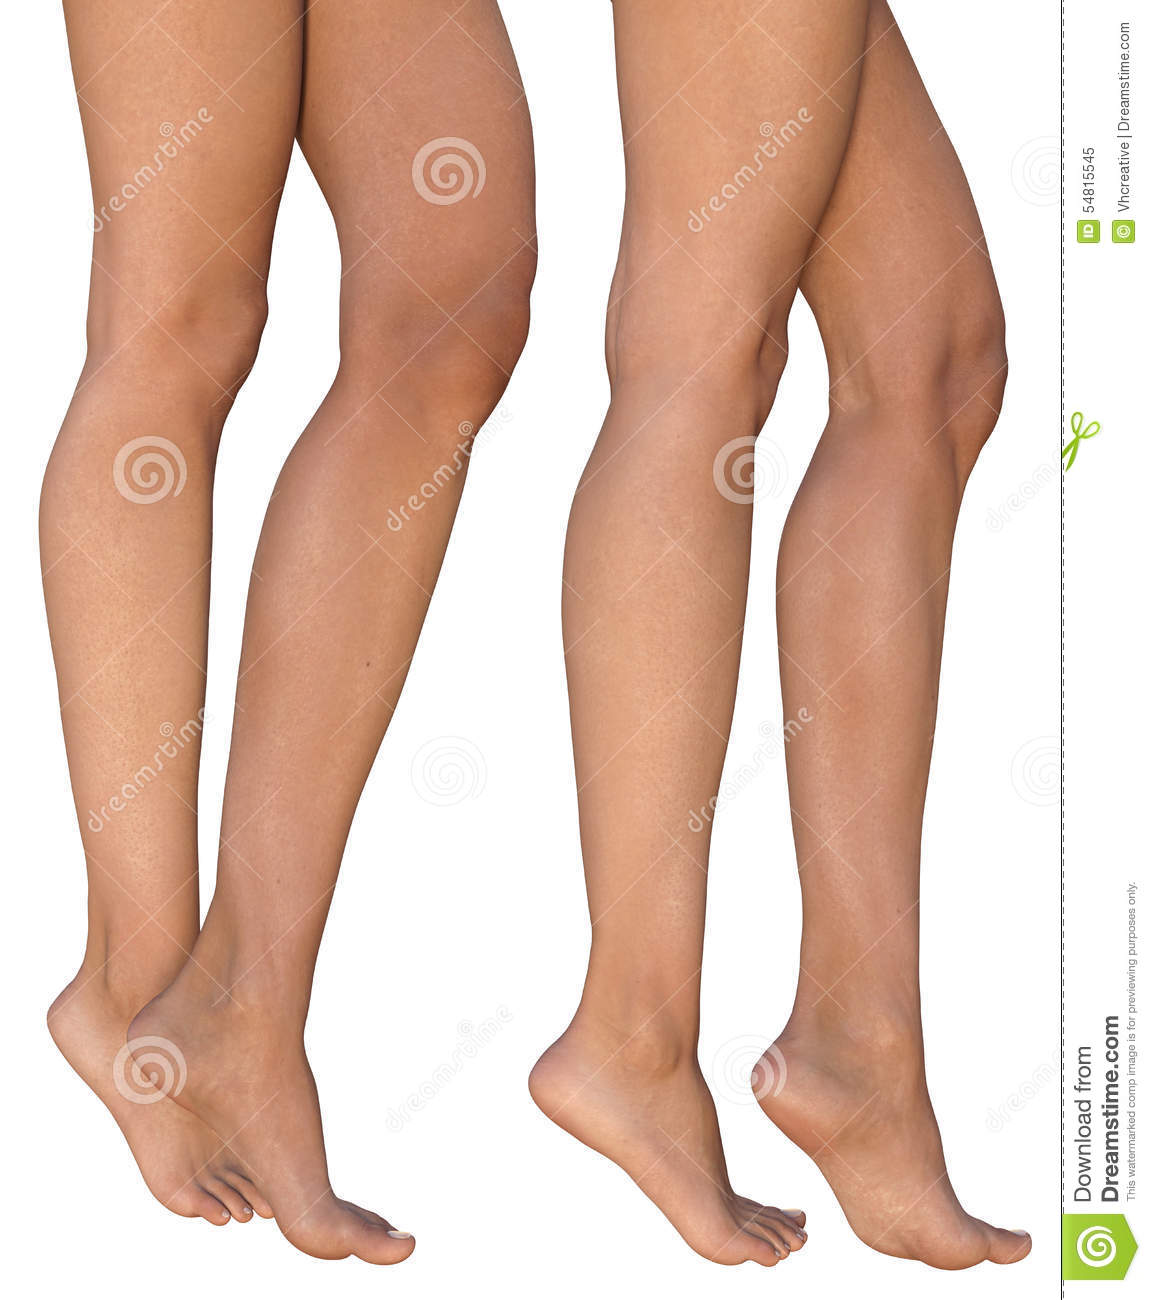 Tanned Female Legs Standing On Toes Stock Image